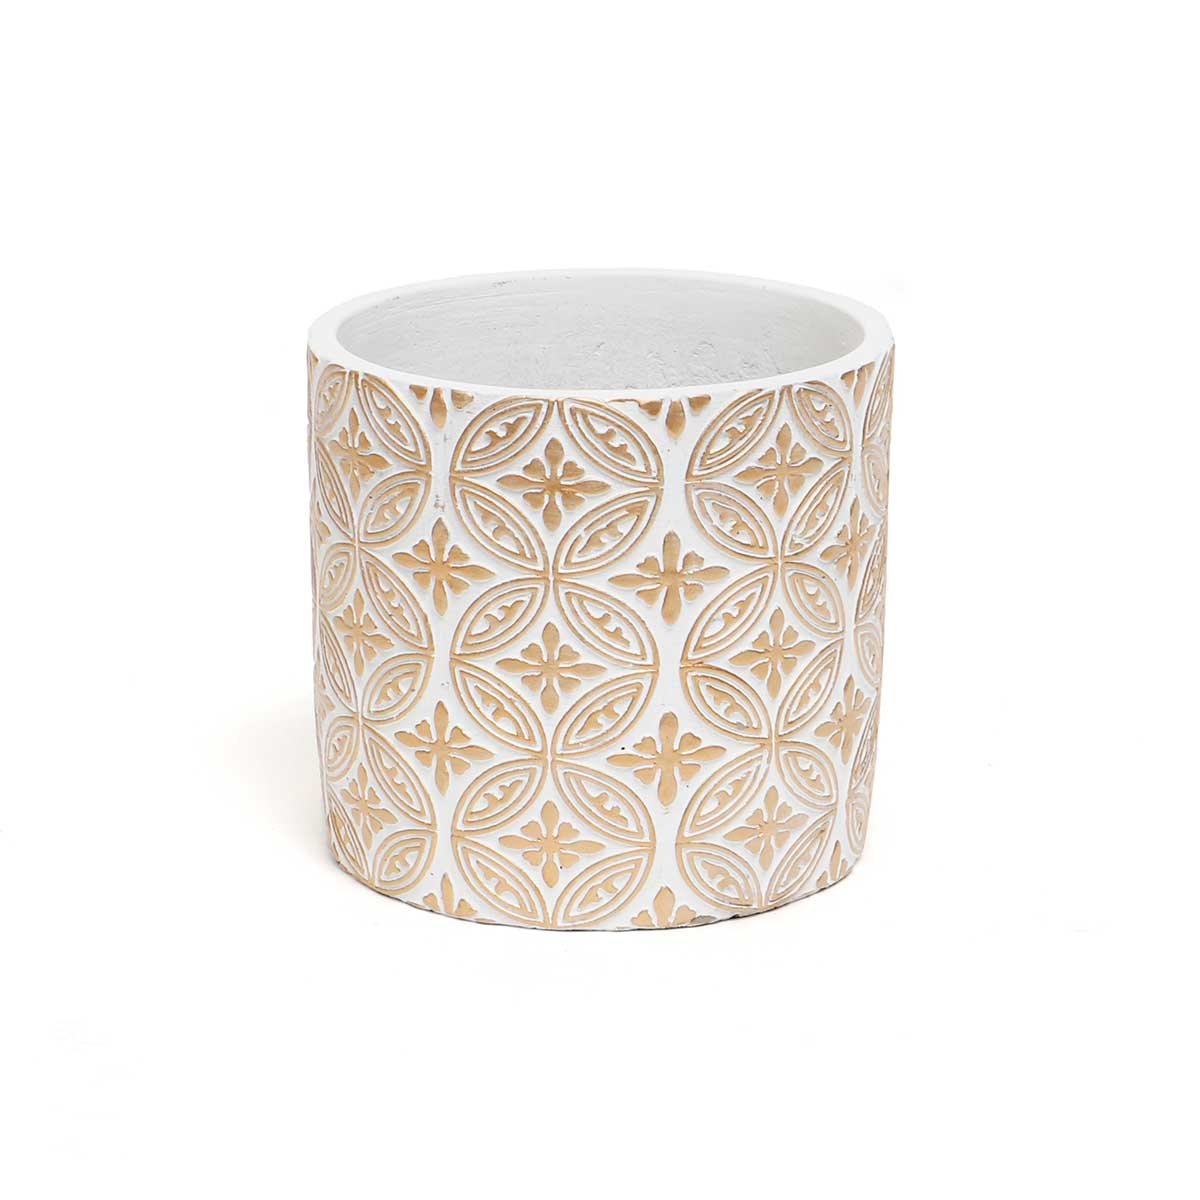 GALA WHITE/GOLD CONCRETE POT